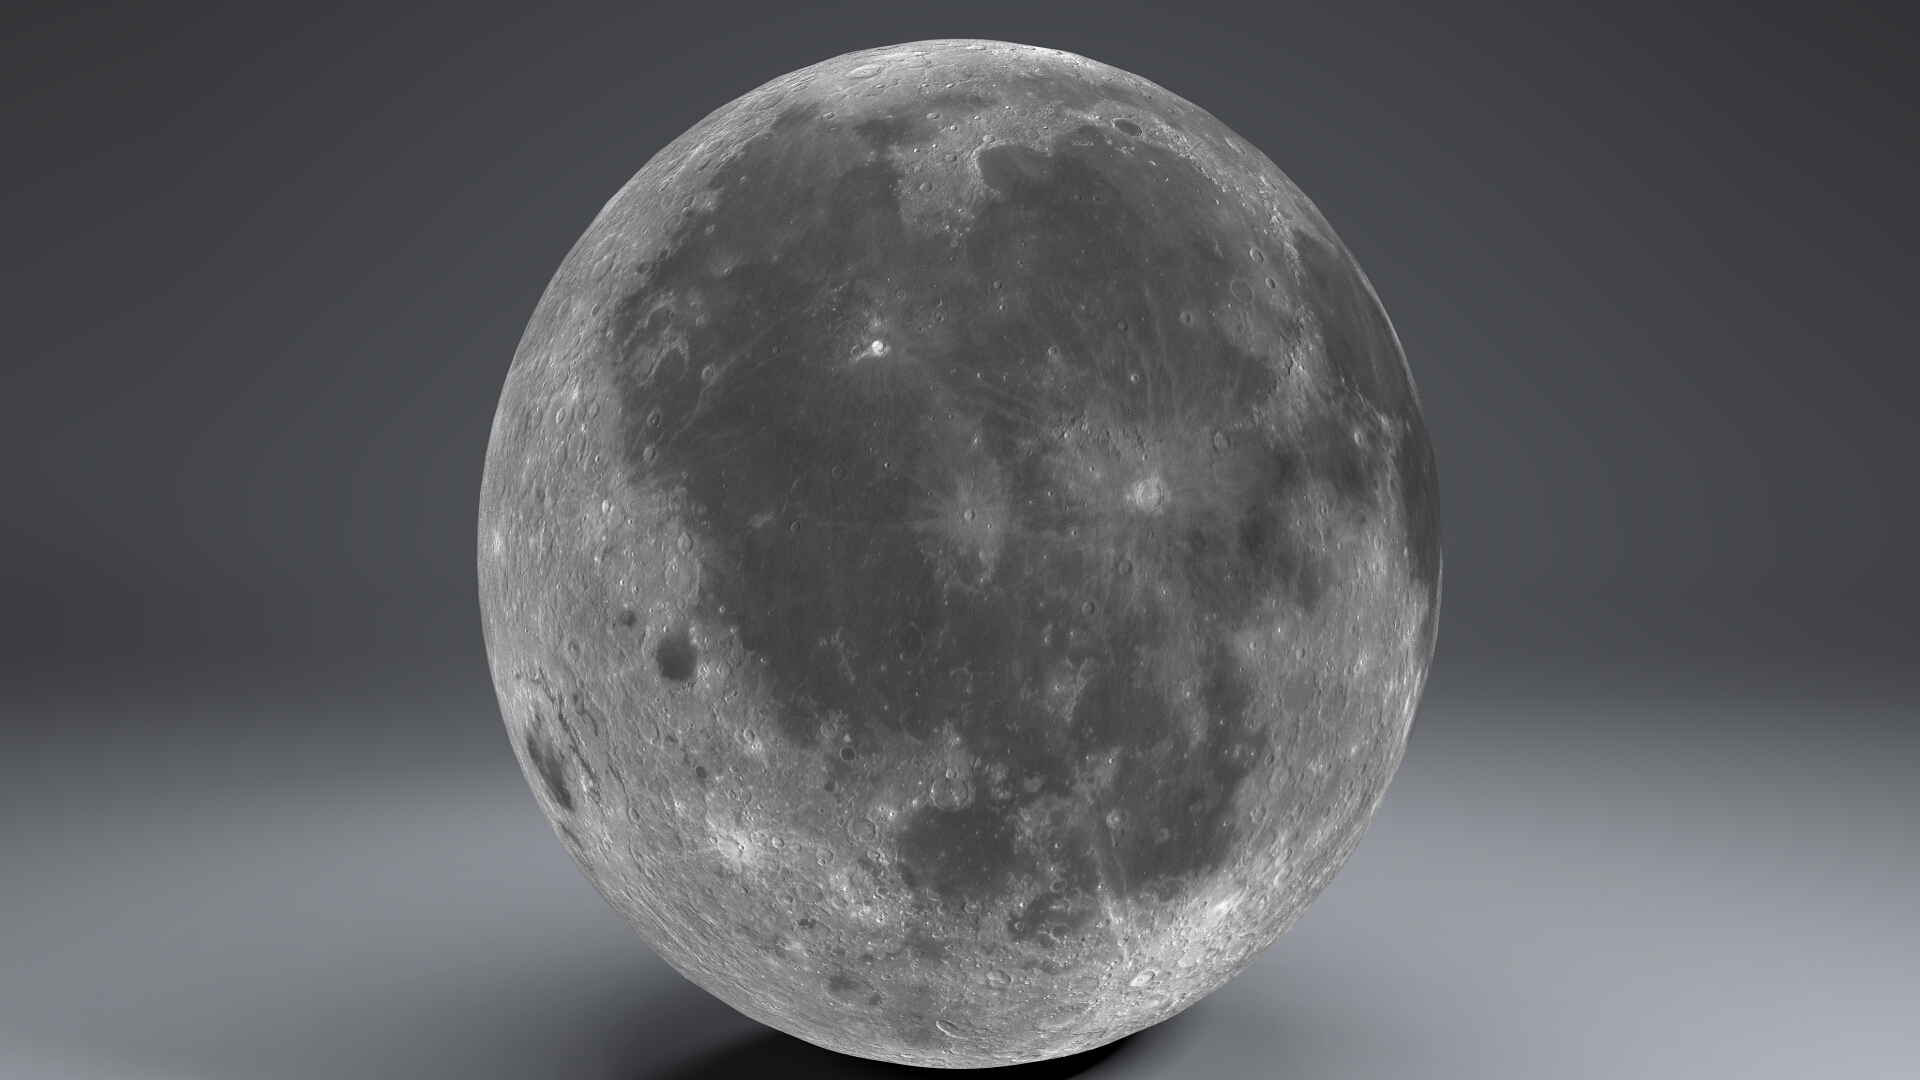 moon cruinne 11k 3d model 3ds fbx blend dae obj 221920